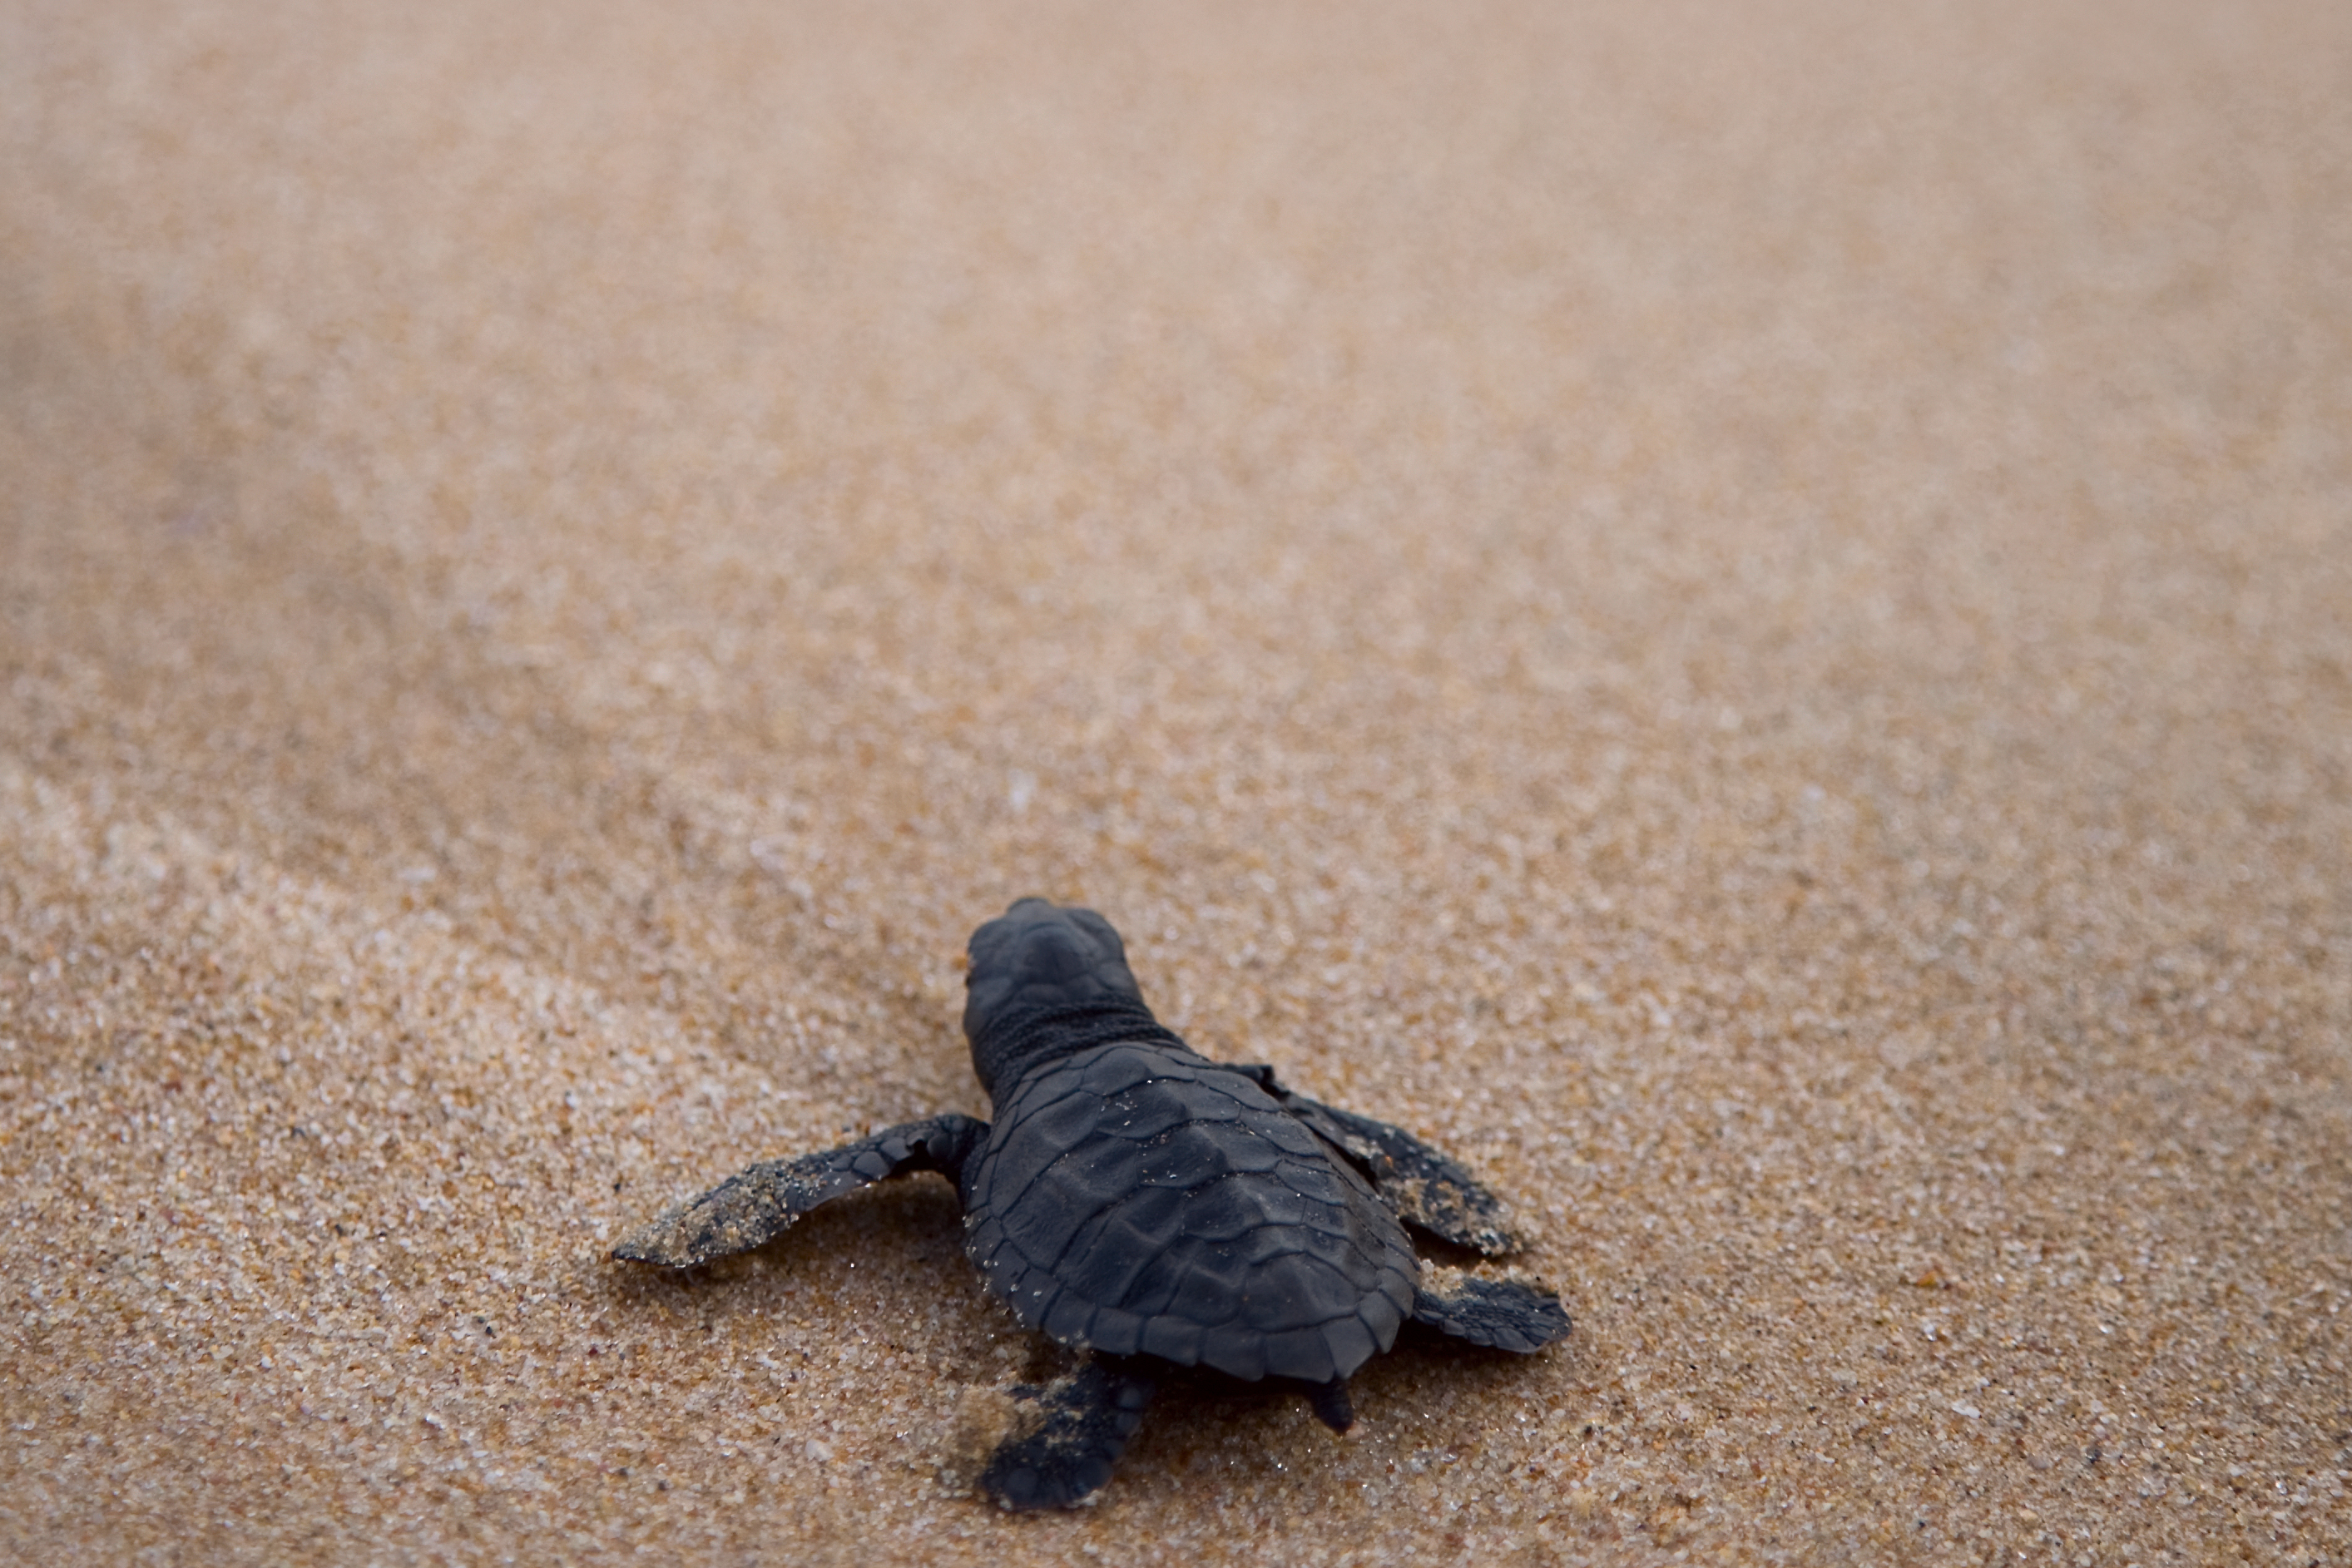 A sea turtle hatchling in the sand.